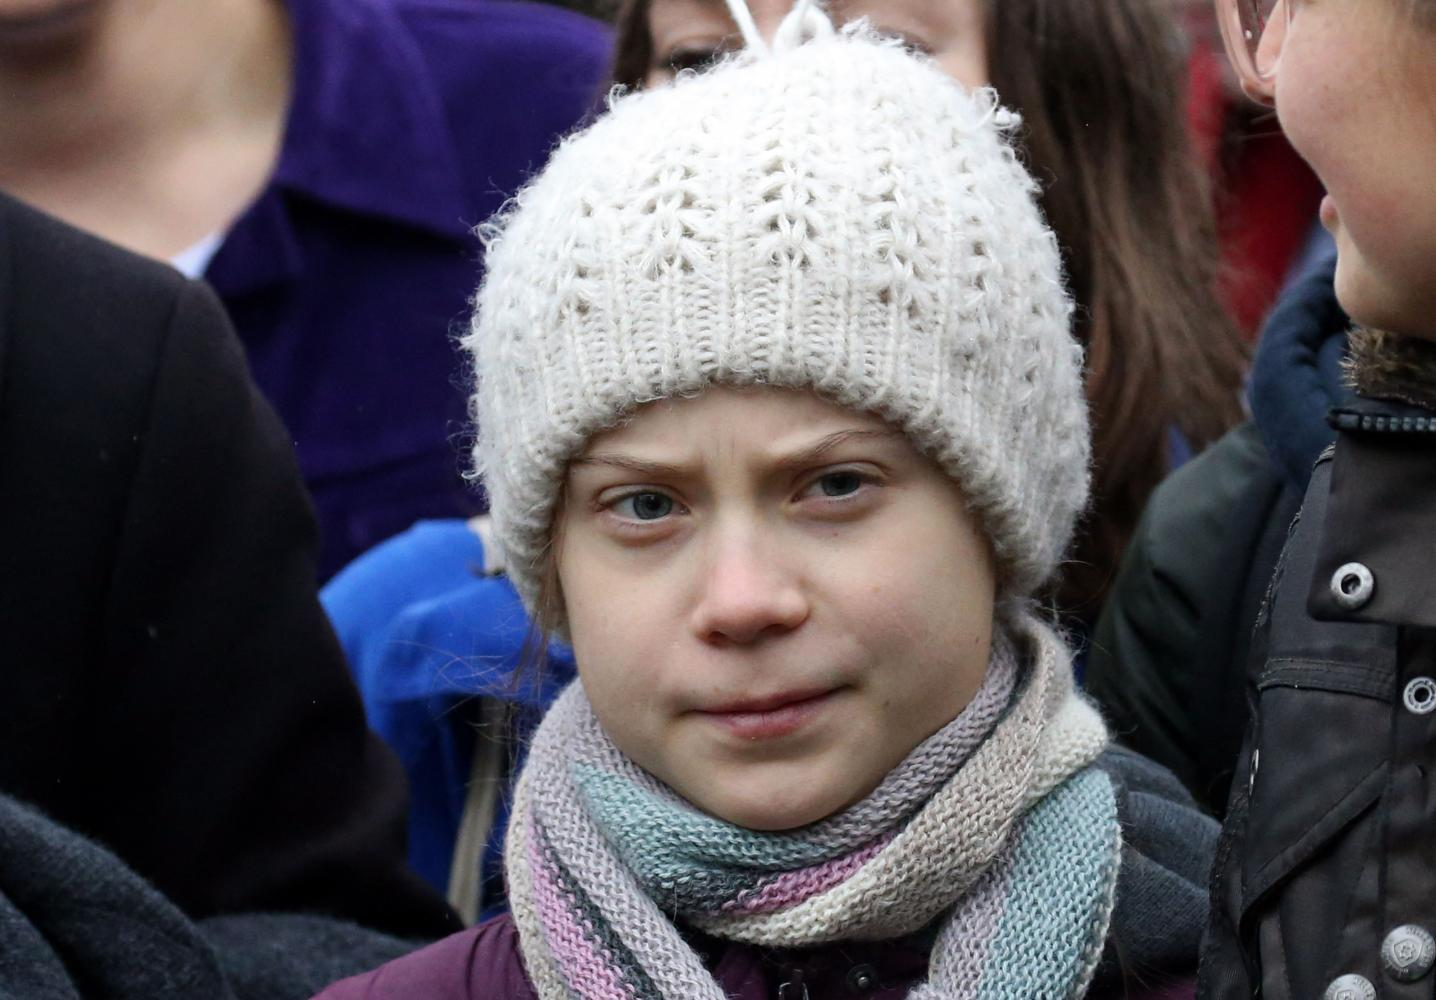 Who's more right, Greta Thunberg or Bill Gates?